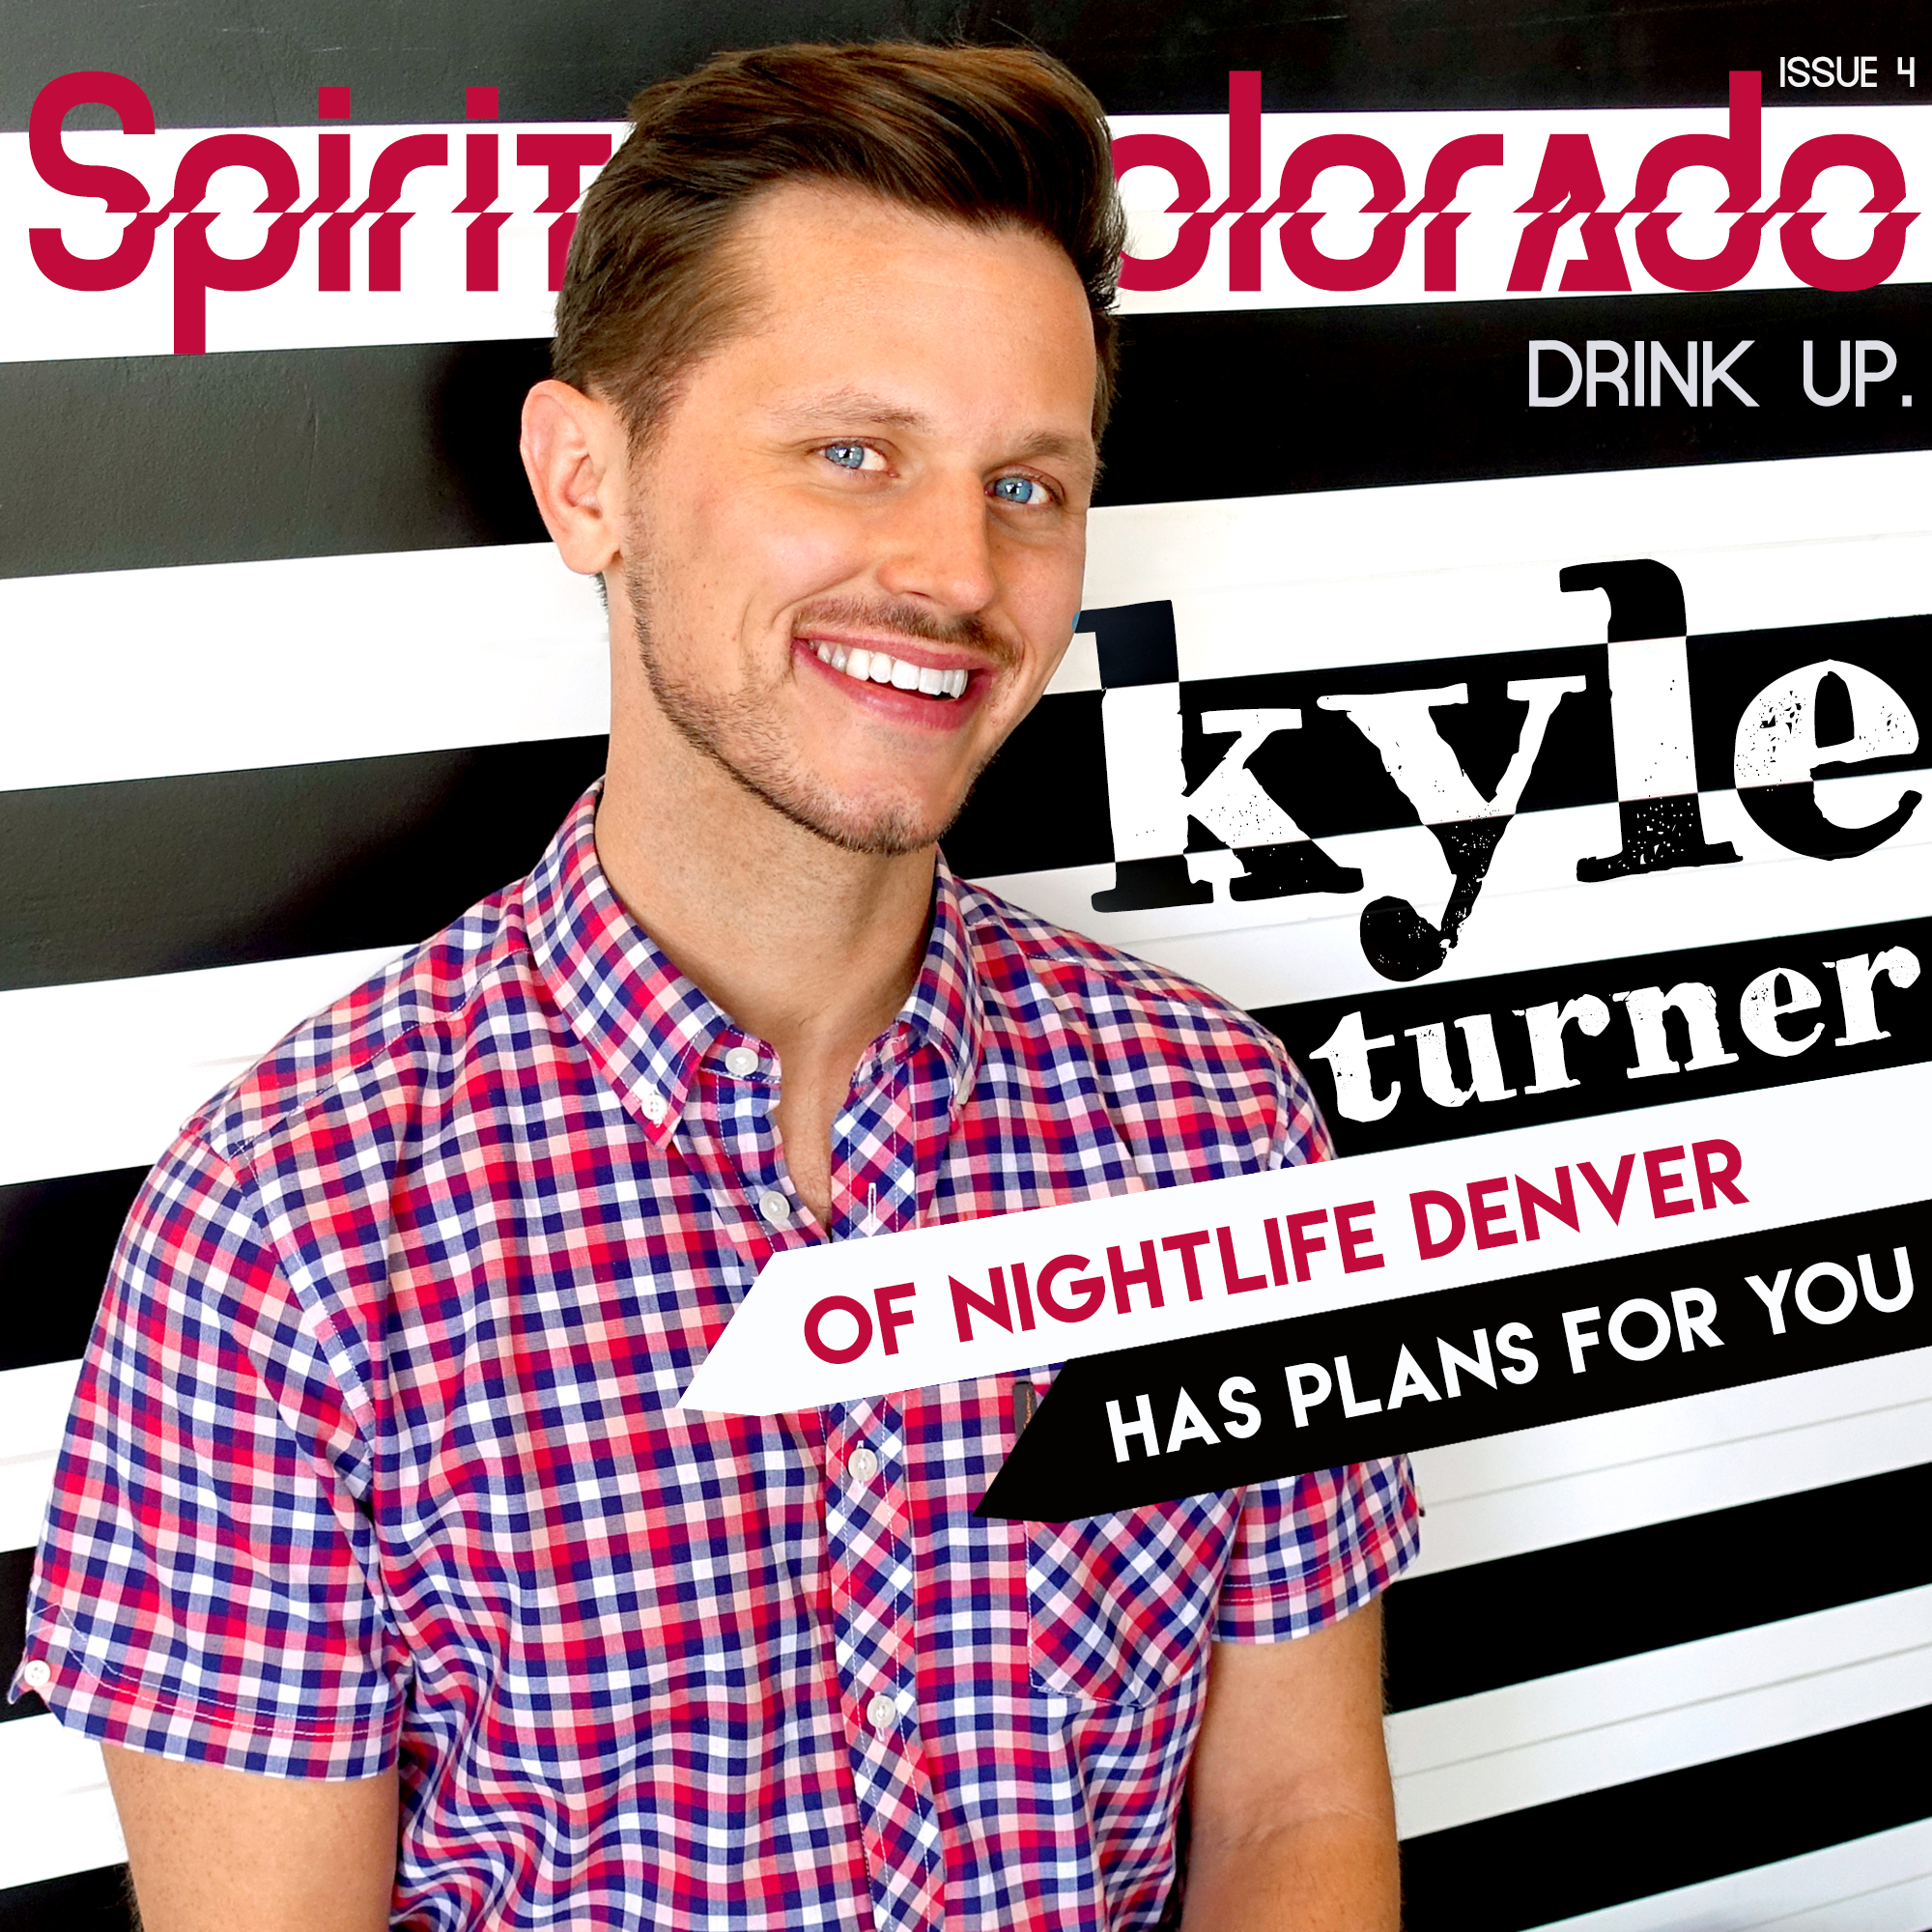 CLICK TO READ THE LATEST ISSUE OF SPIRITED COLORADO